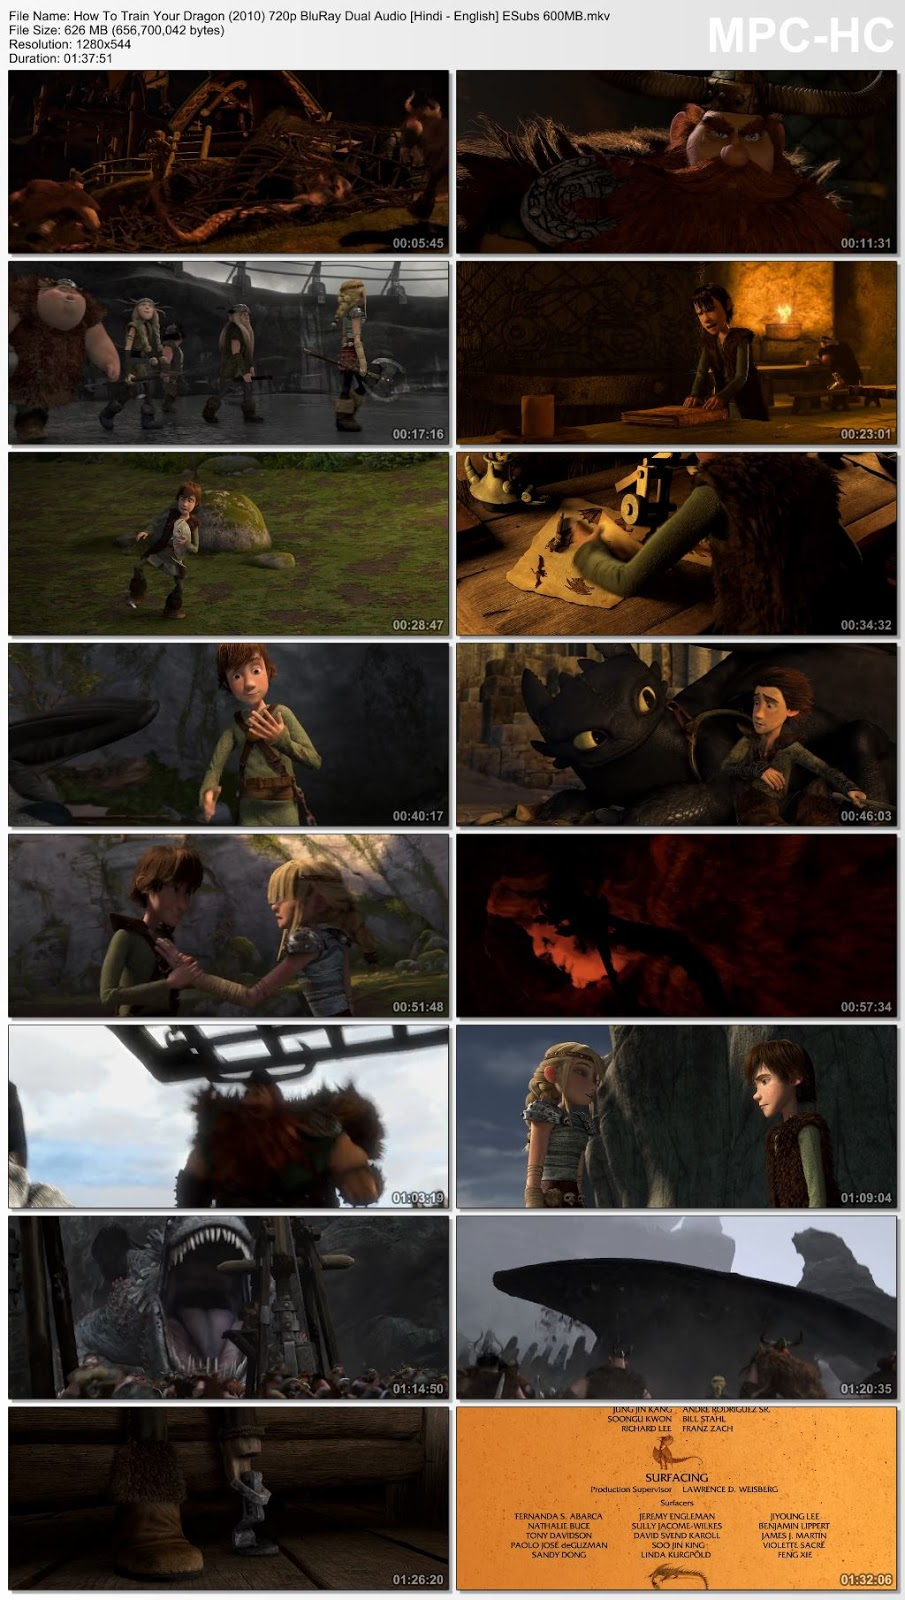 How To Train Your Dragon (2010) 720p BluRay Dual Audio [Hindi – English] ESubs 600MB Desirehub